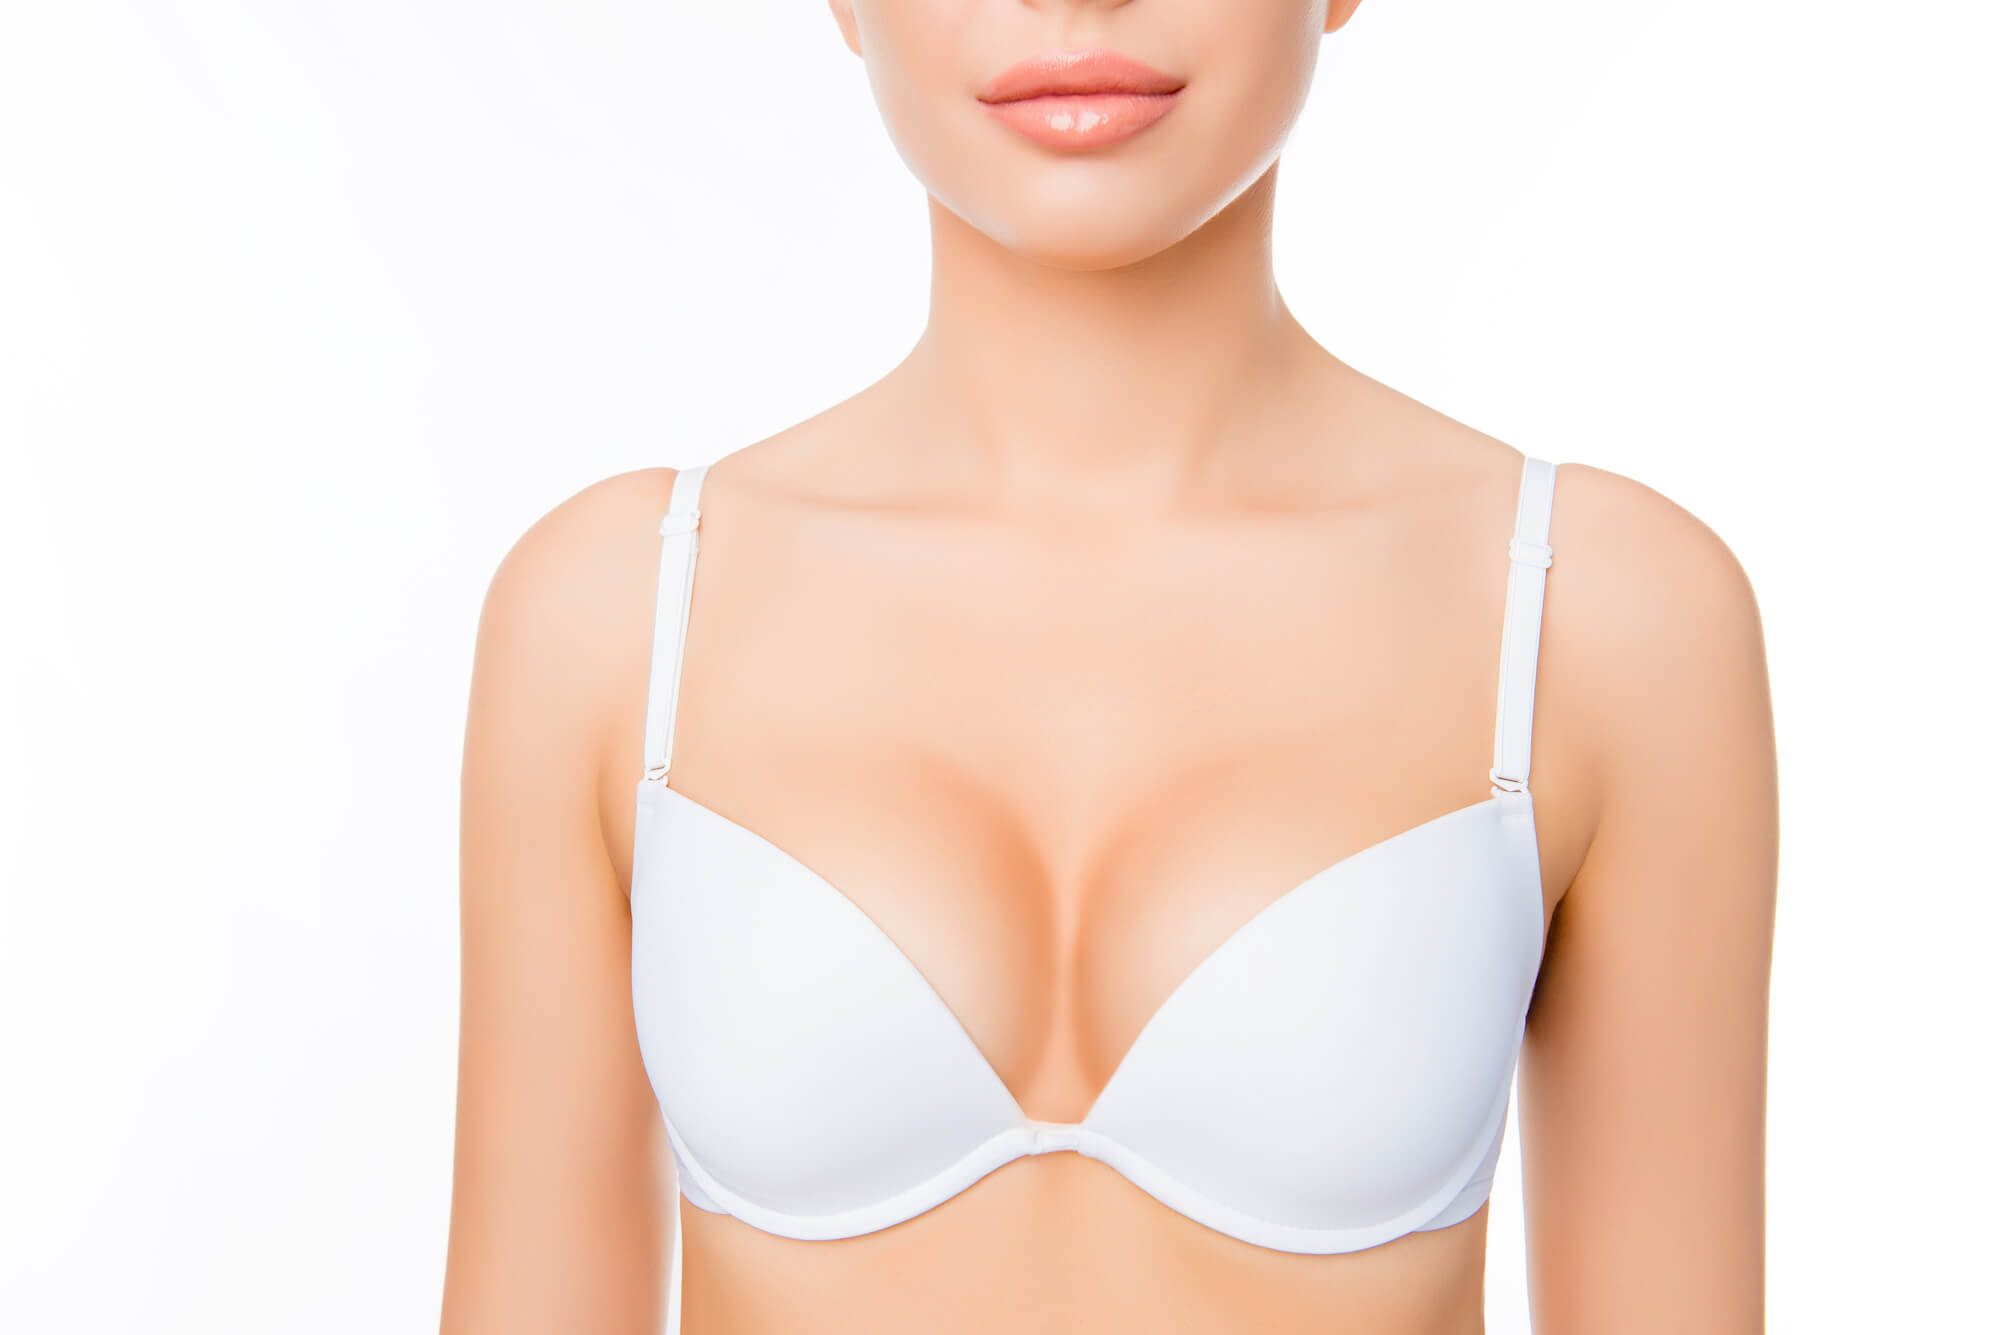 breast augmentation before and after photo gallery featured image